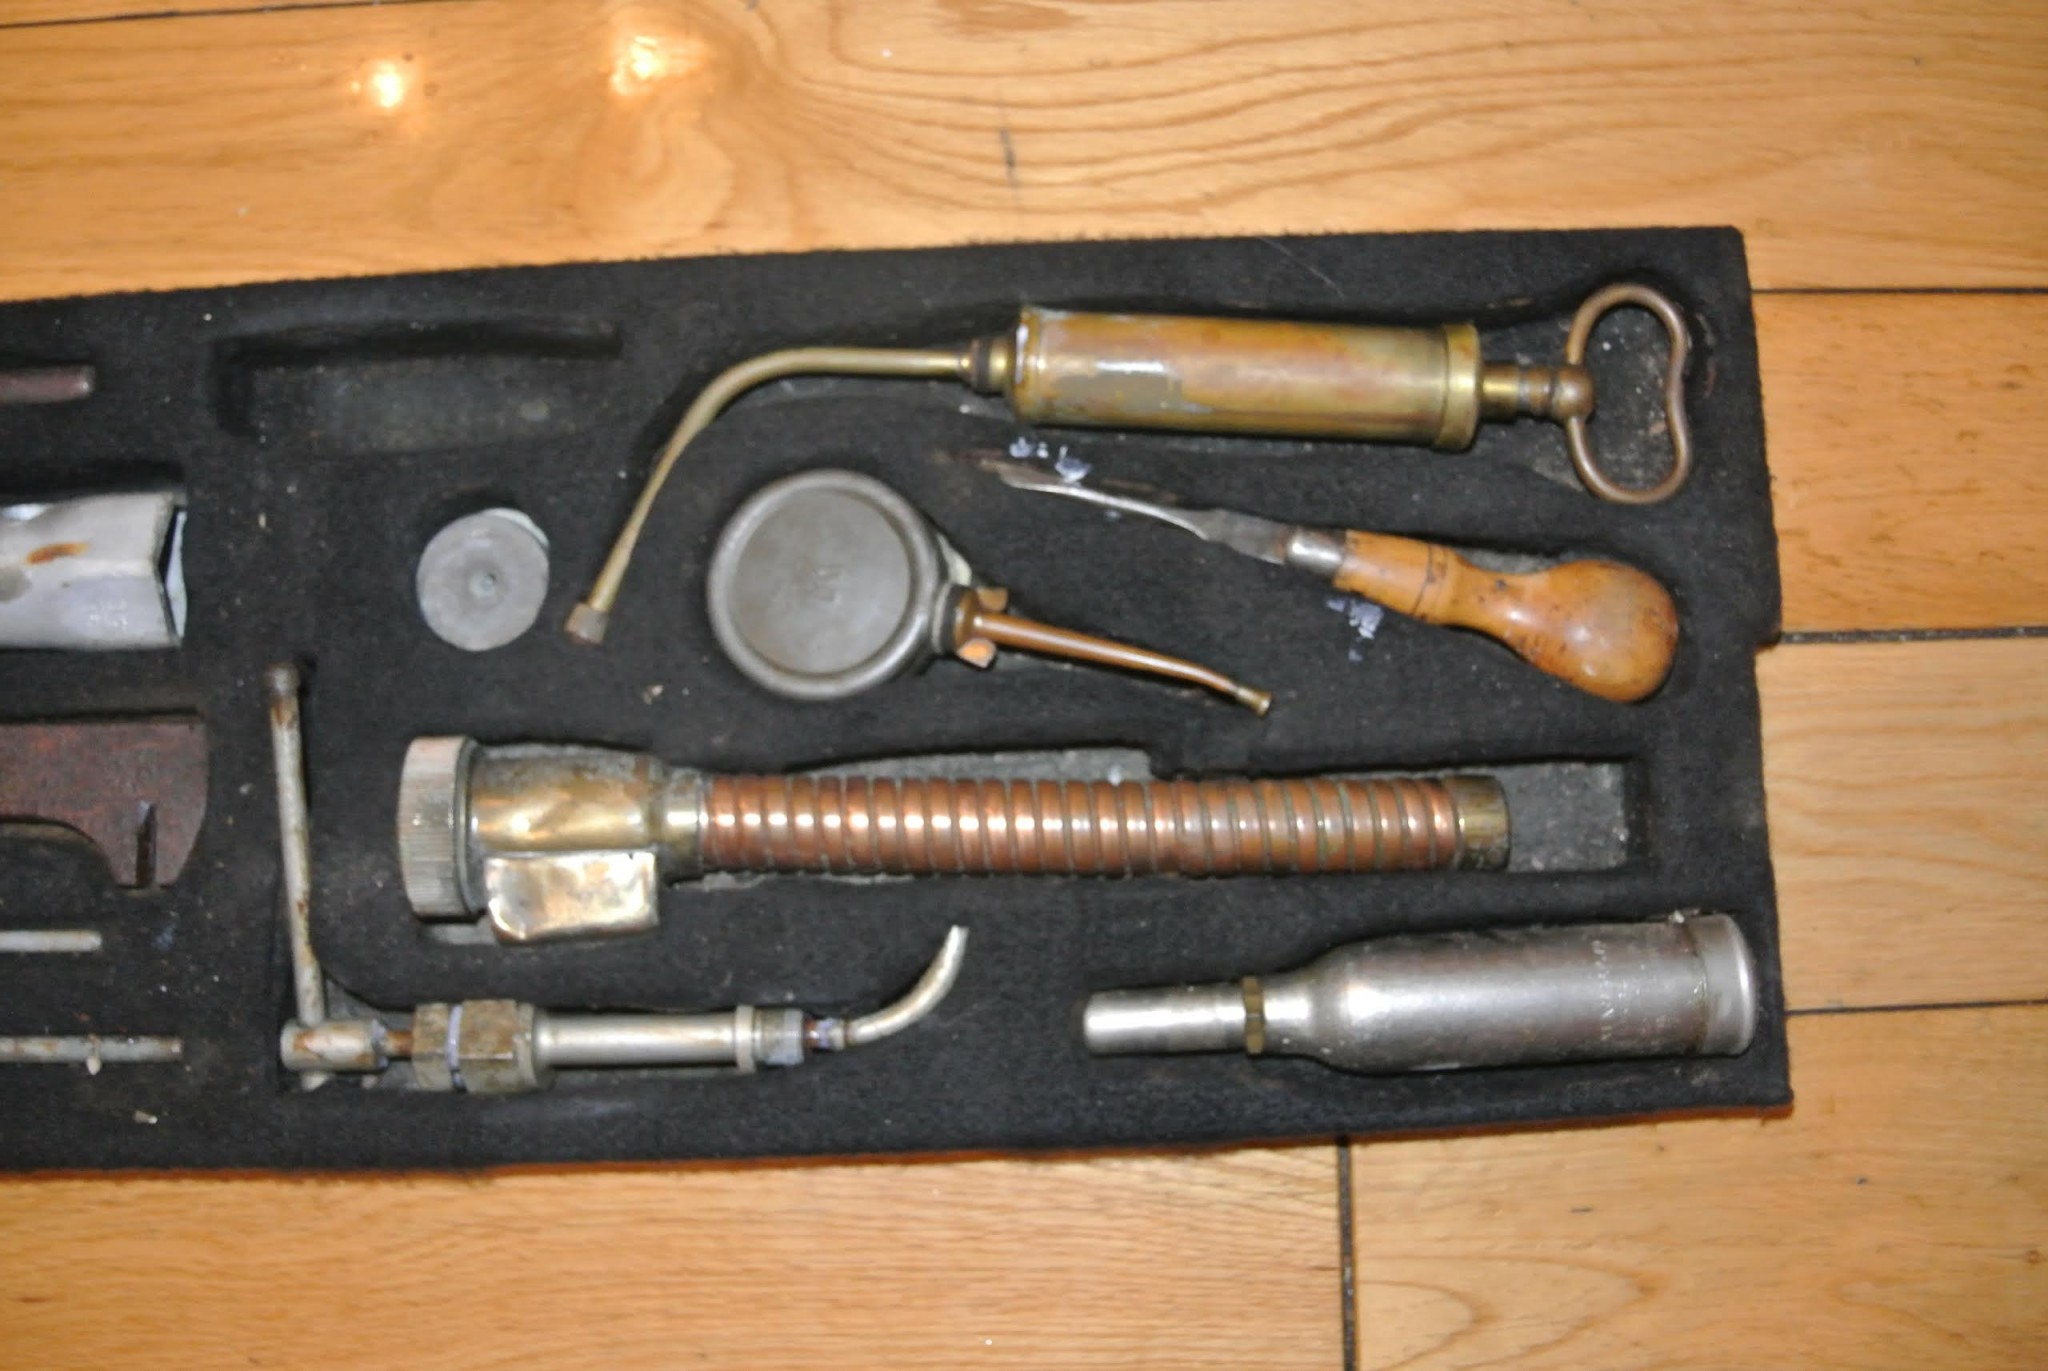 Bentley Derby Tool Kit